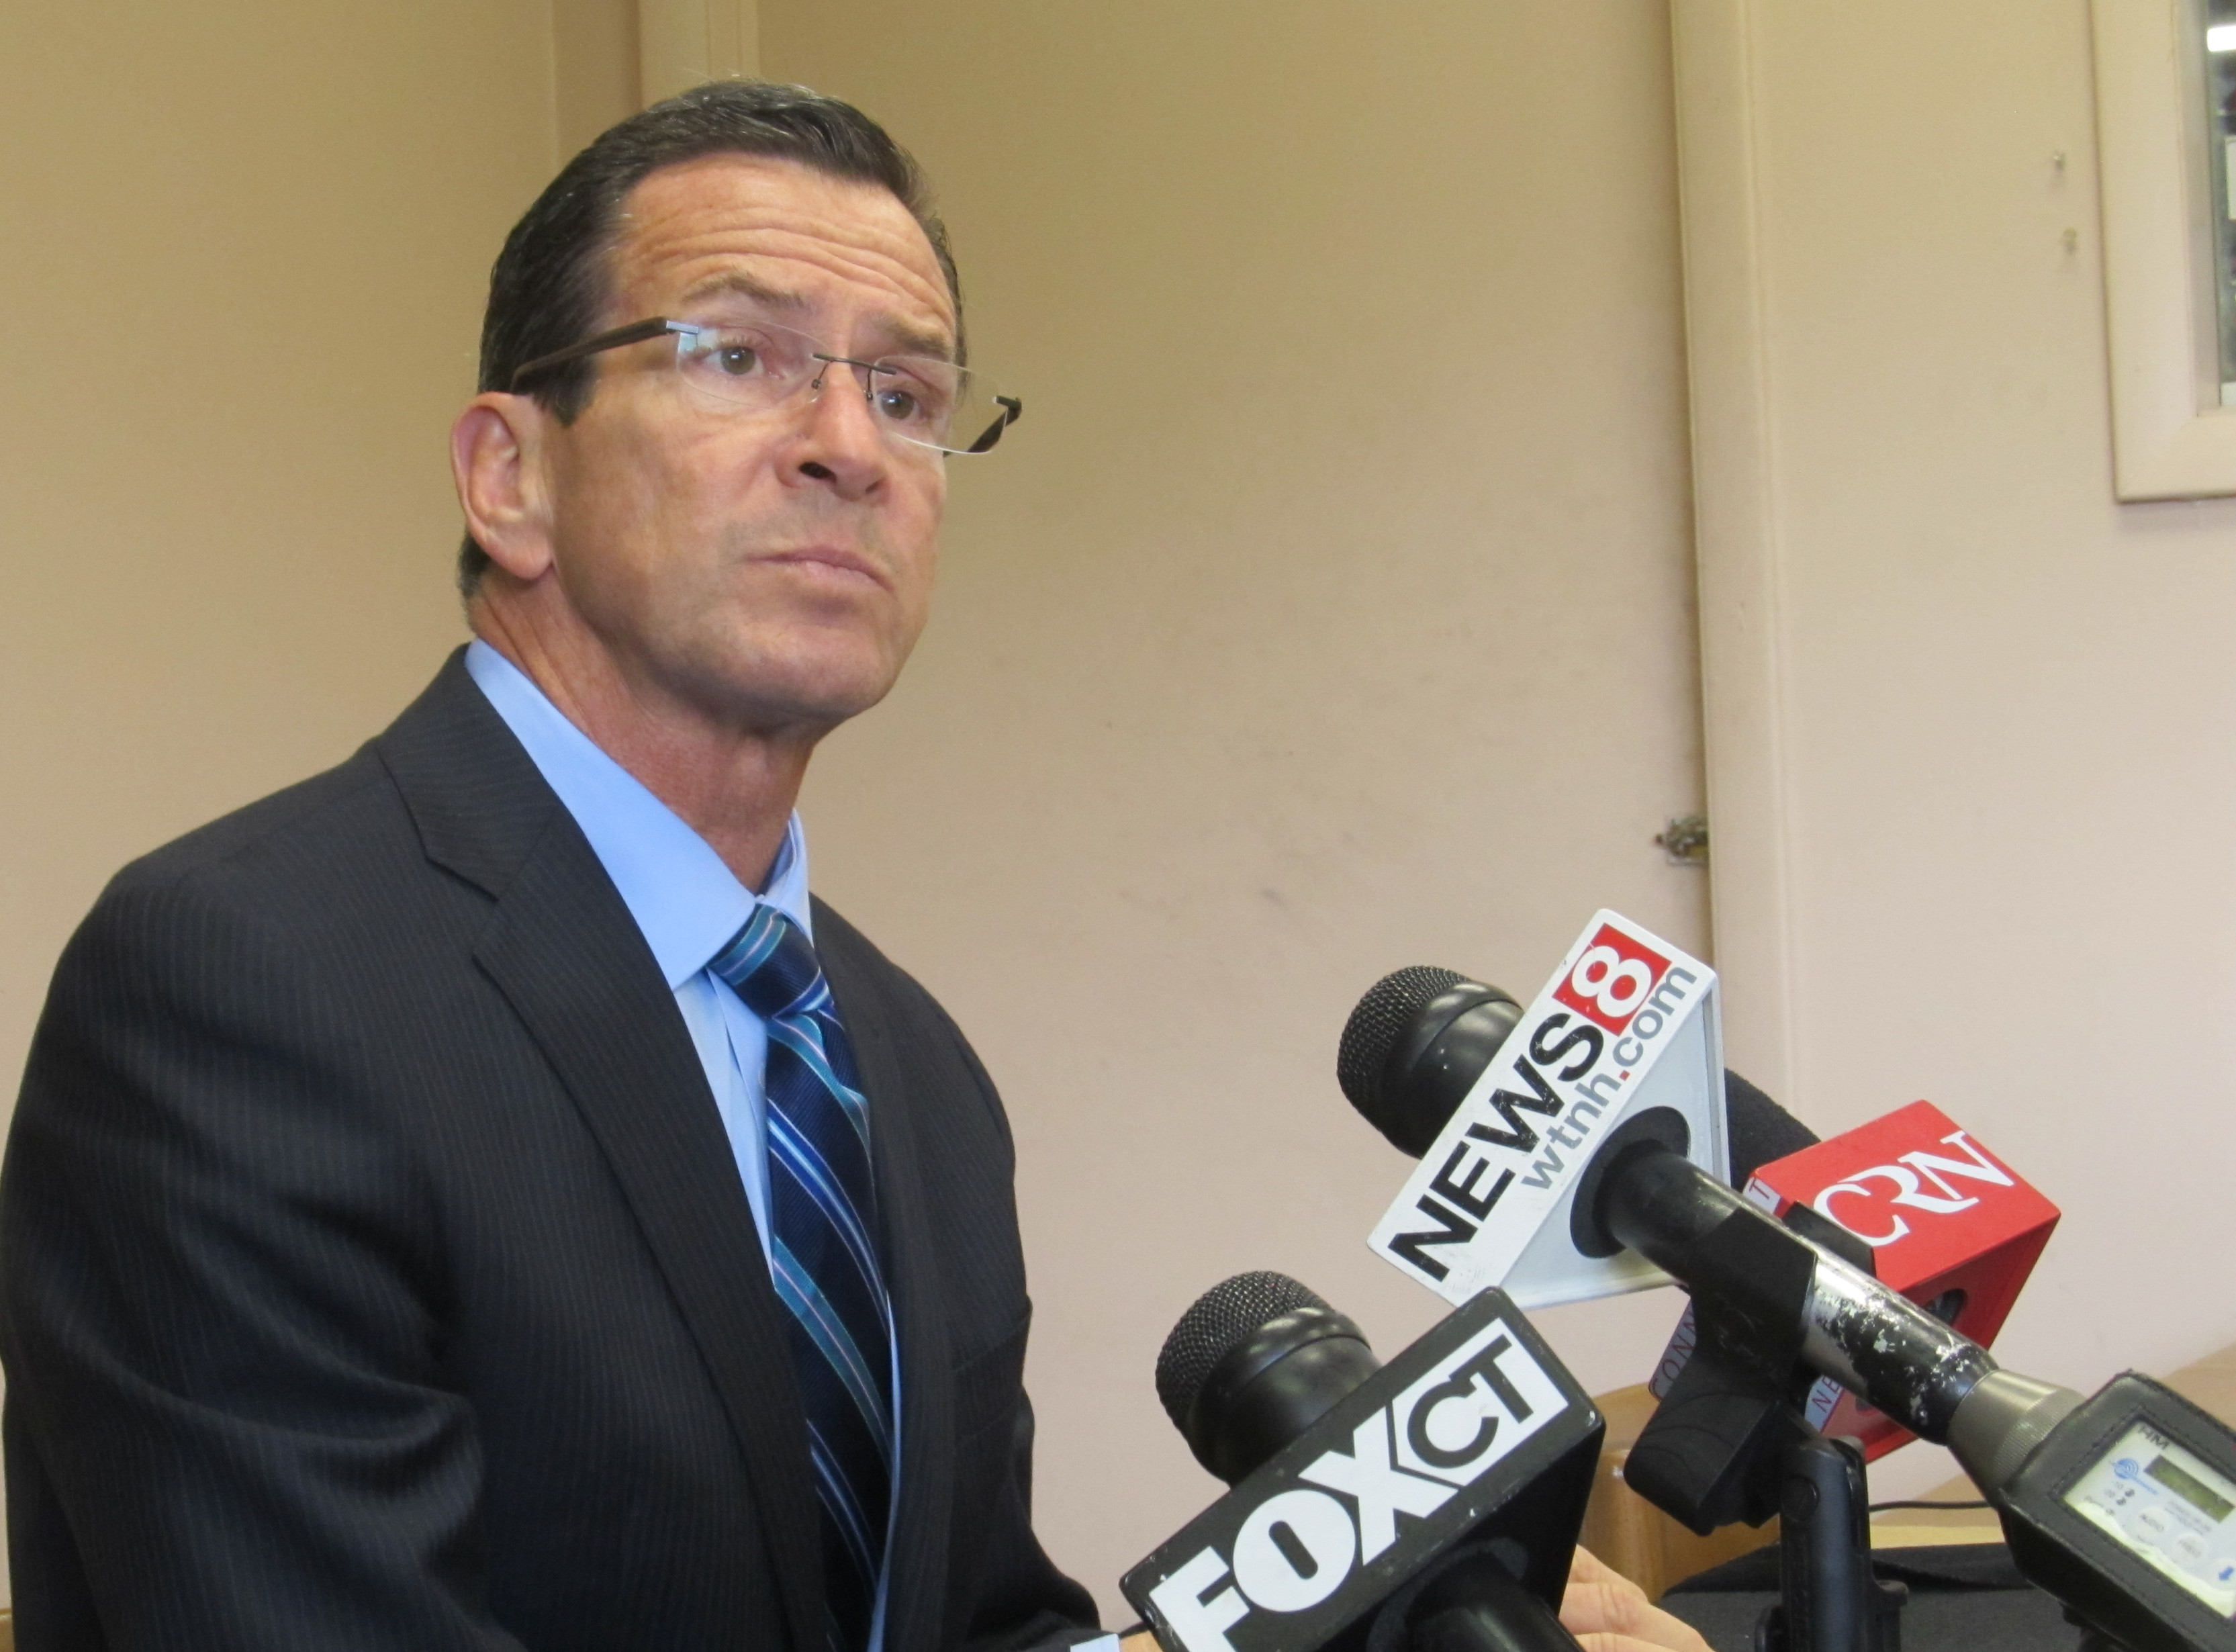 In an angry, unsettled season, Malloy stays the course